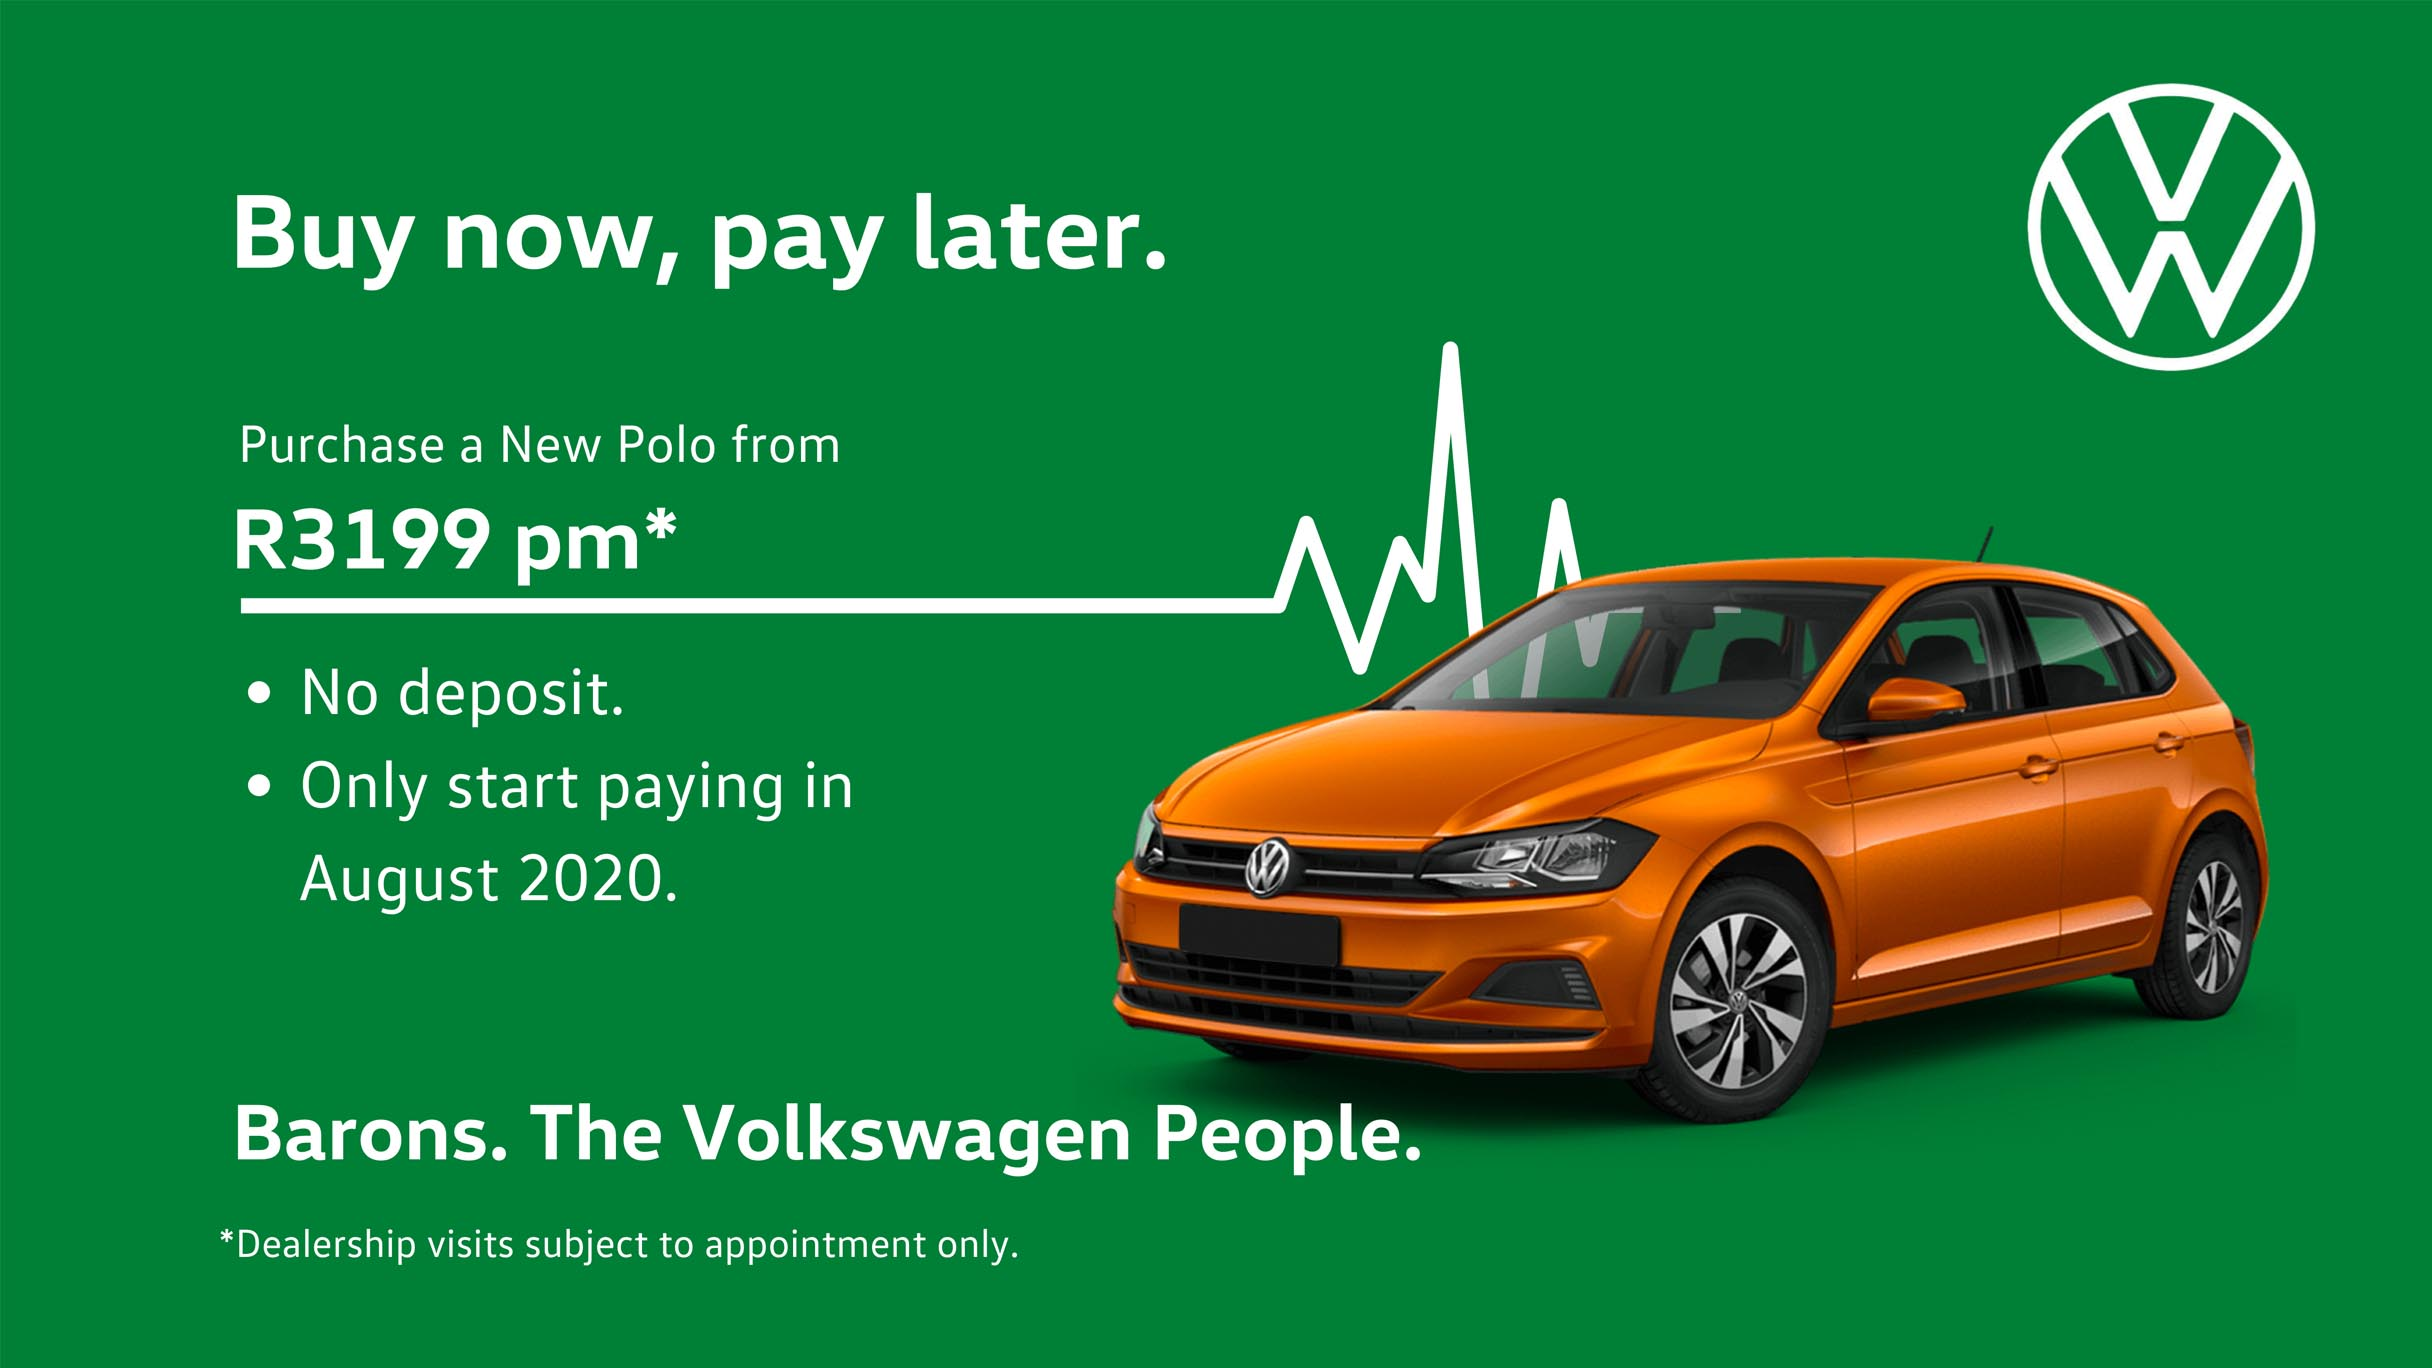 Barons Durban Polo VW Pay later offer